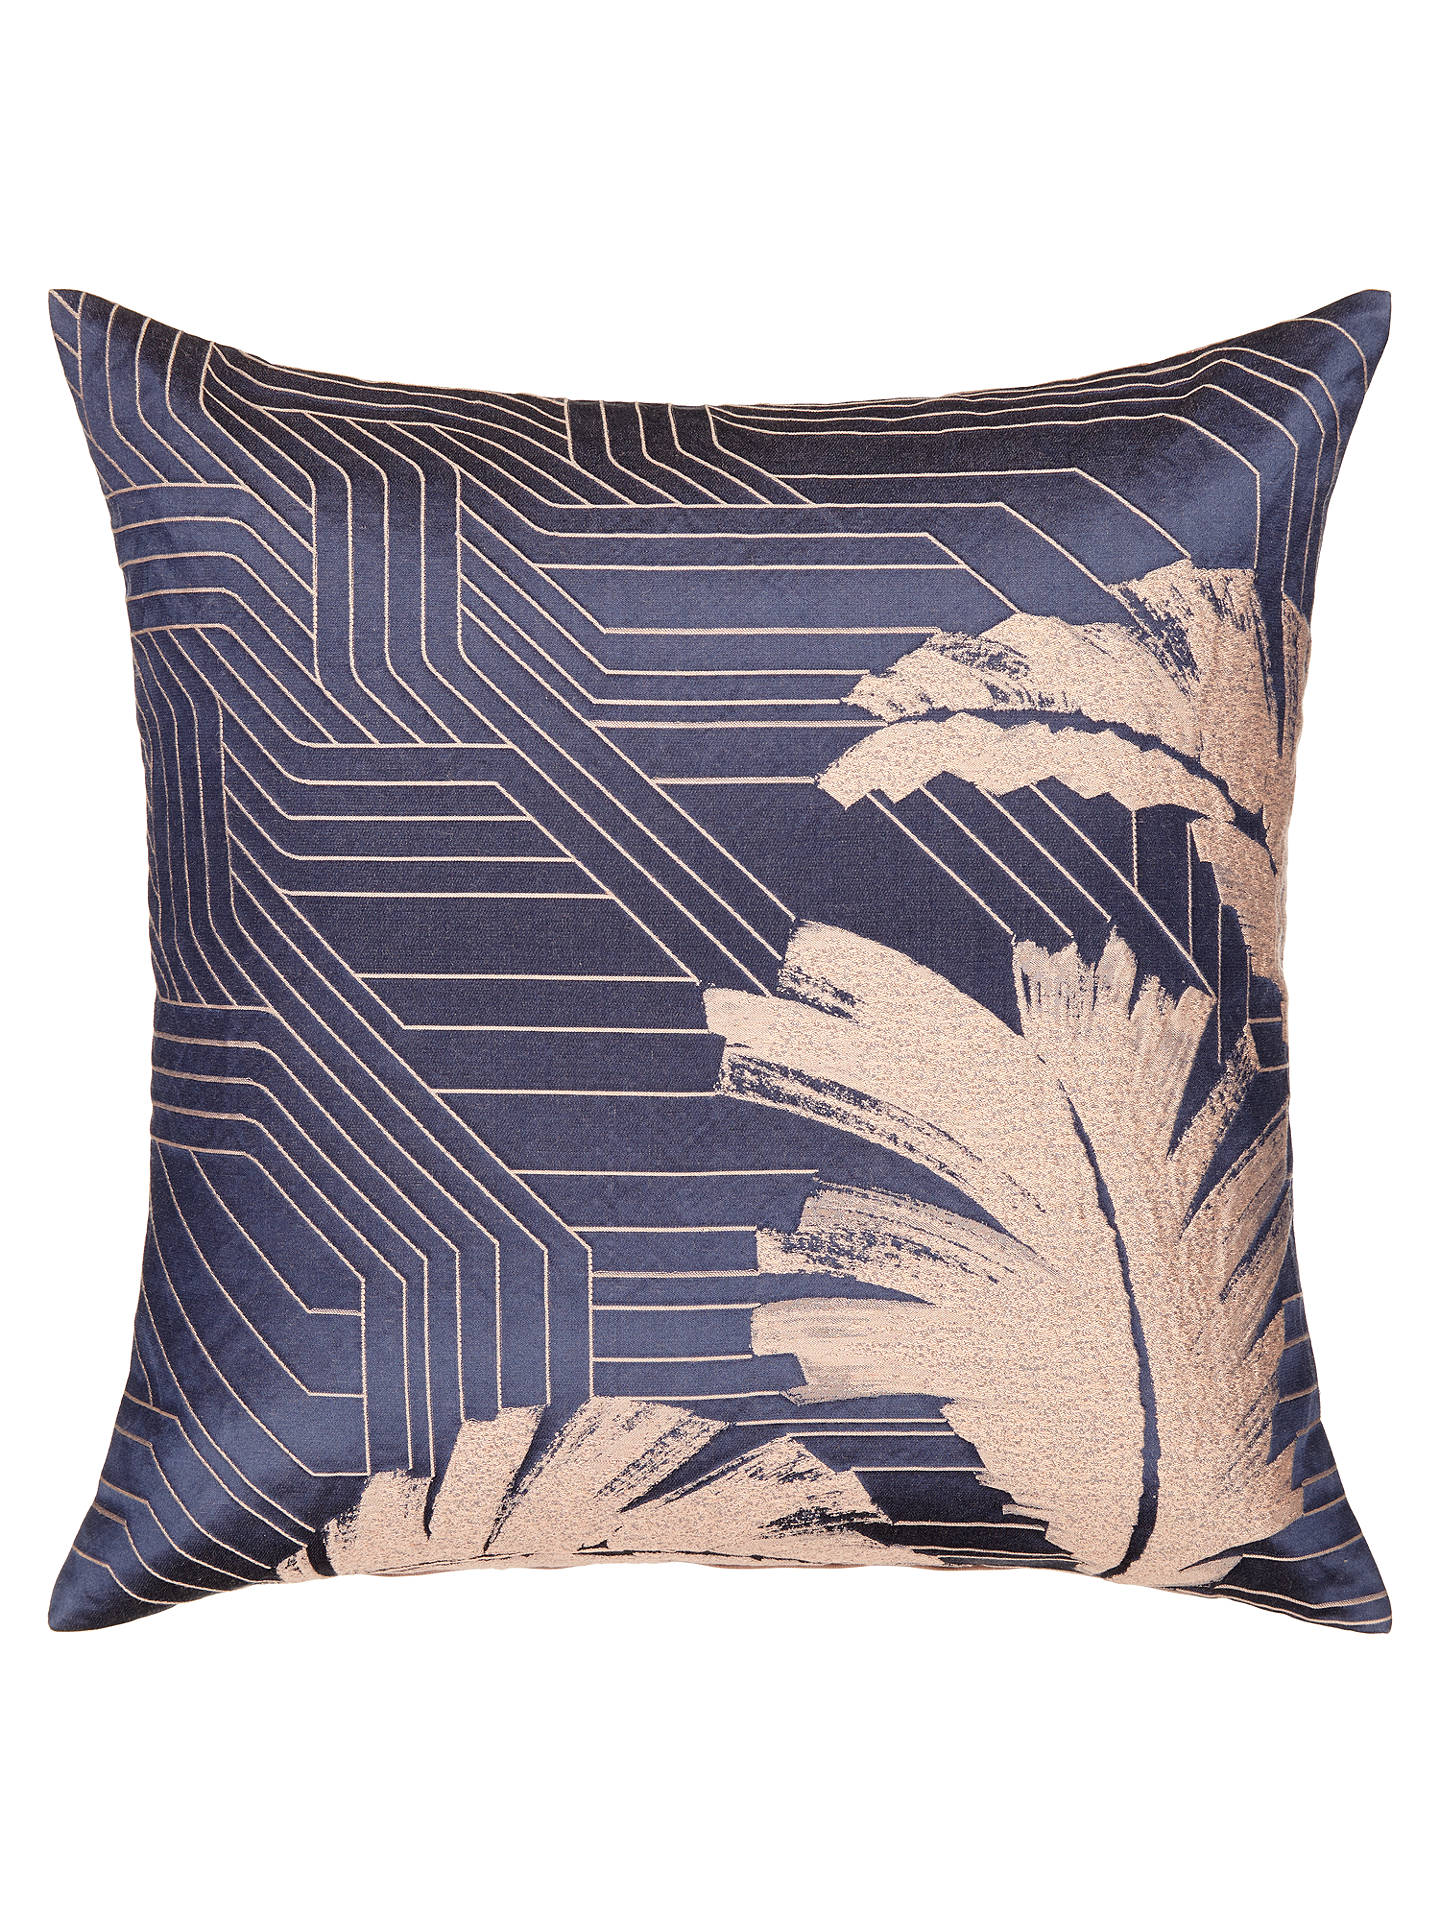 BuyV&A and John Lewis Konoha Cushion, Night Sky Online at johnlewis.com